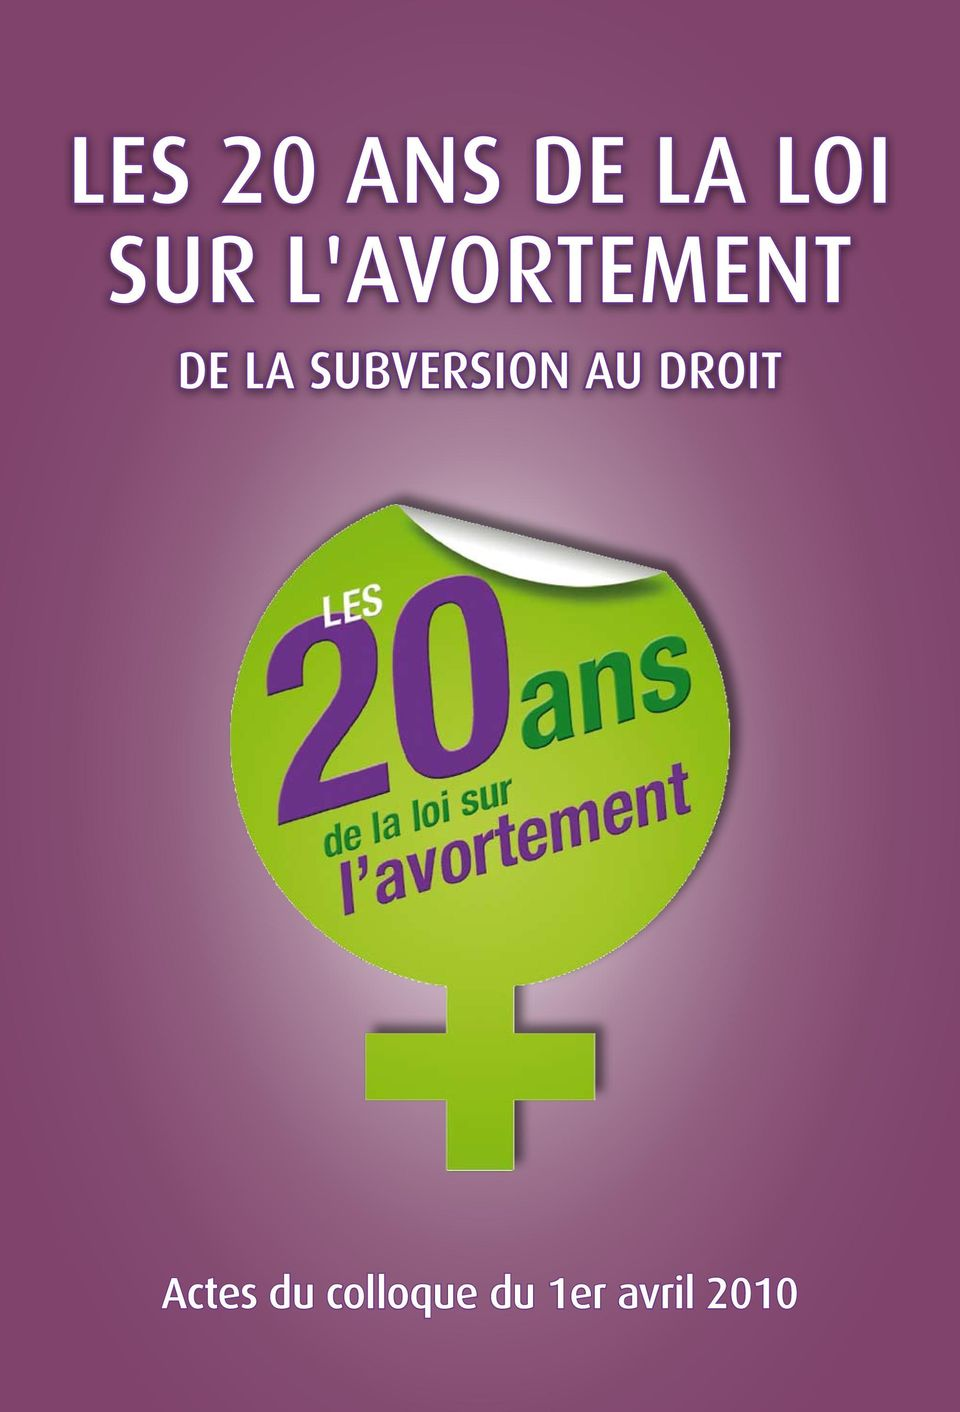 SUBVERSION AU DROIT